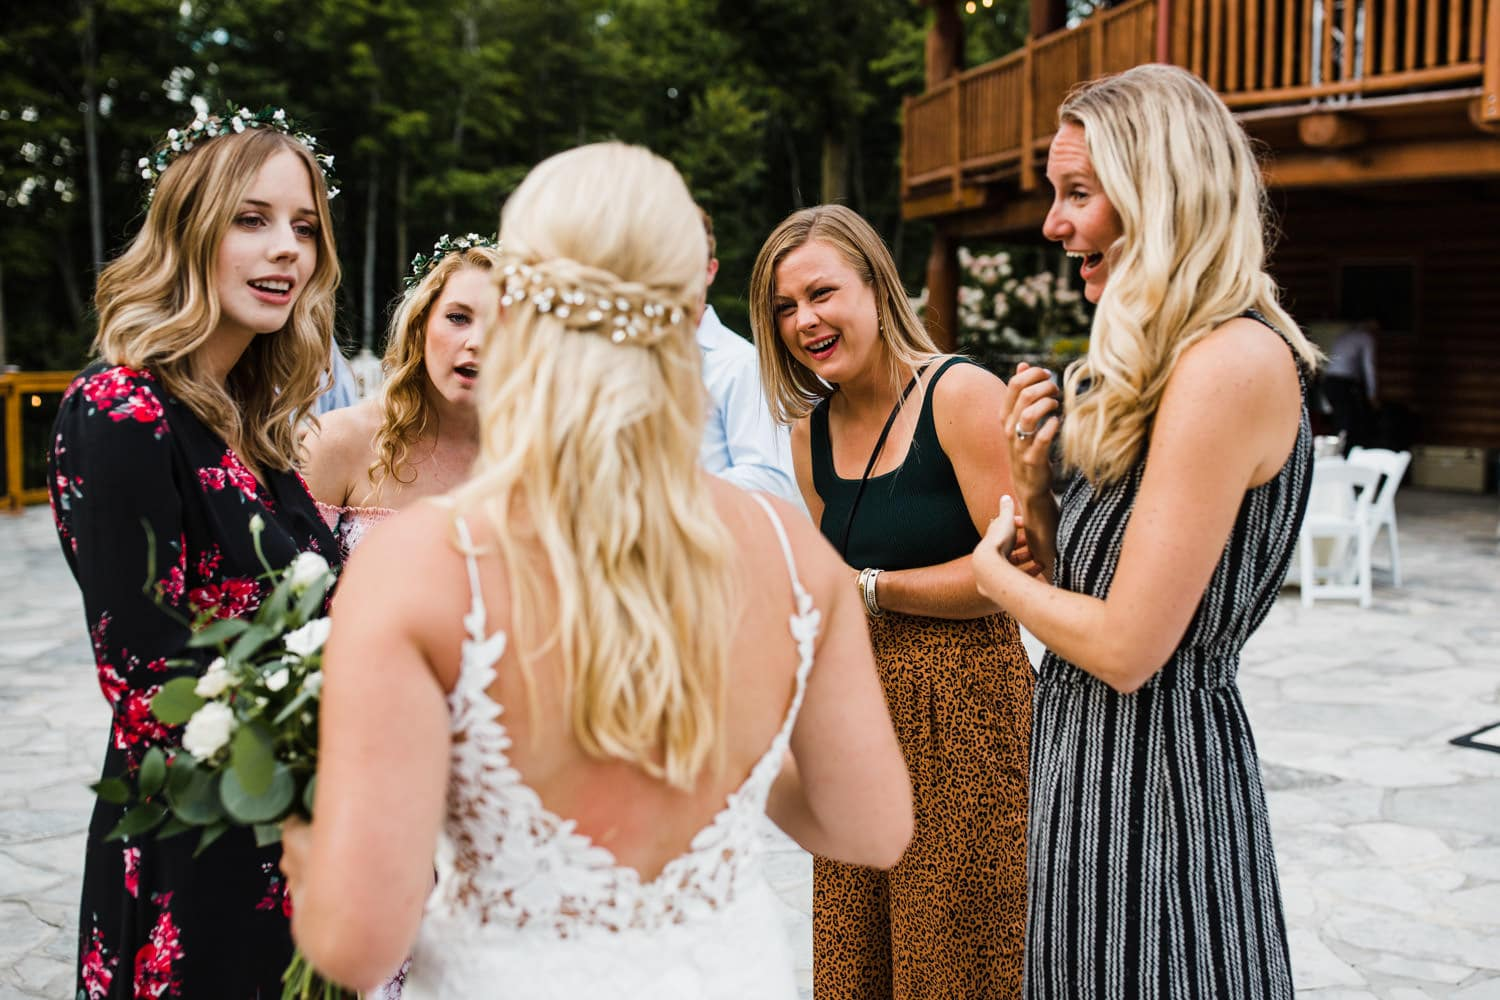 friends look shocked and surprised after outdoor wedding ceremony